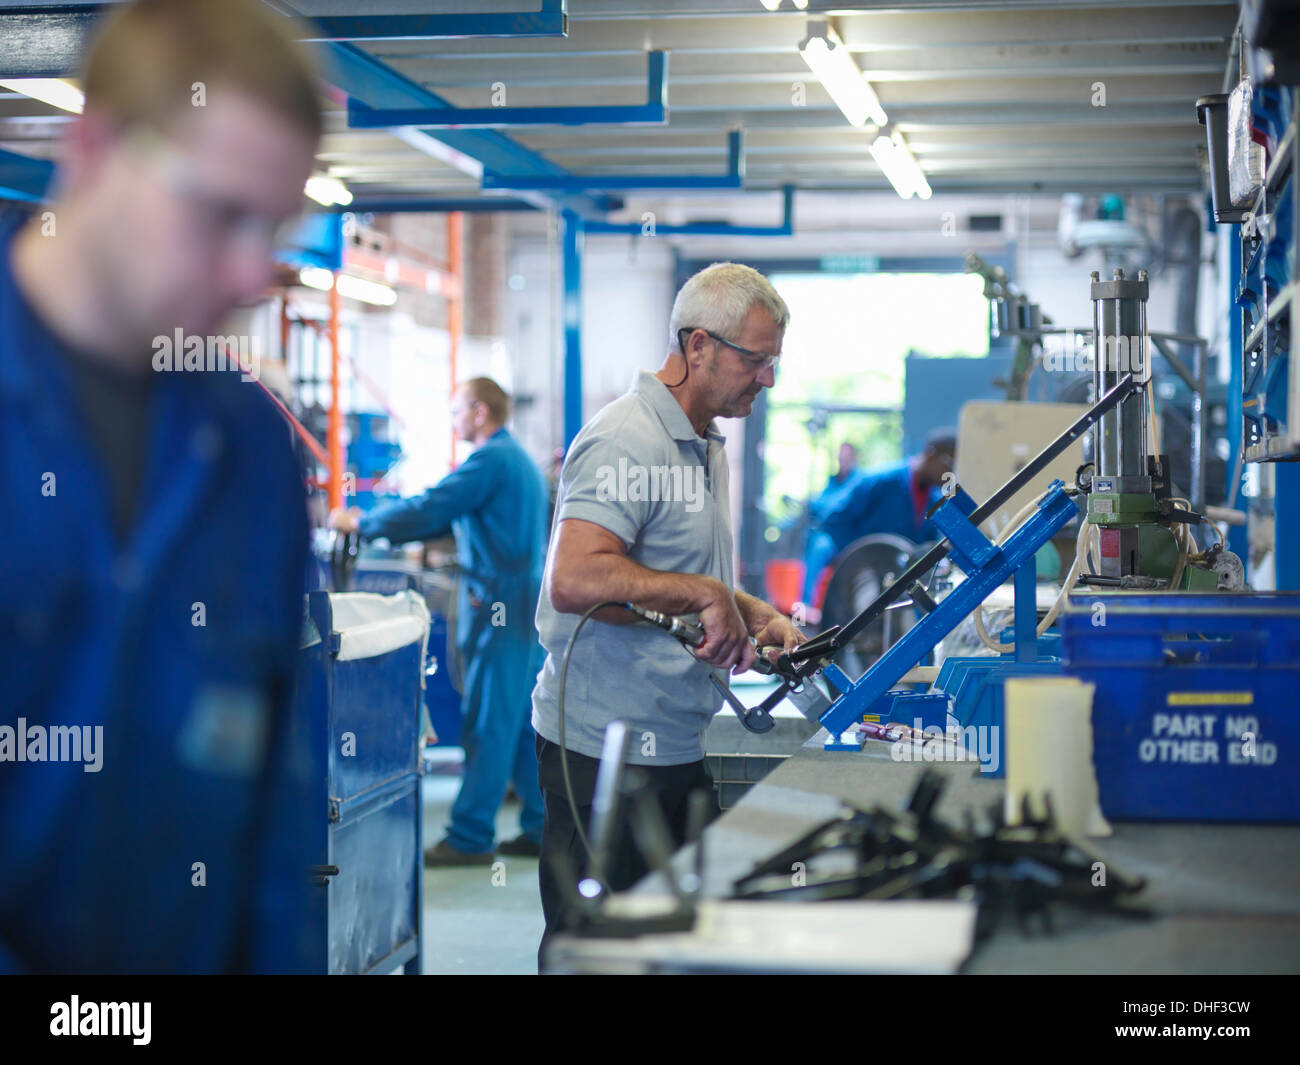 Workers on production line in factory - Stock Image